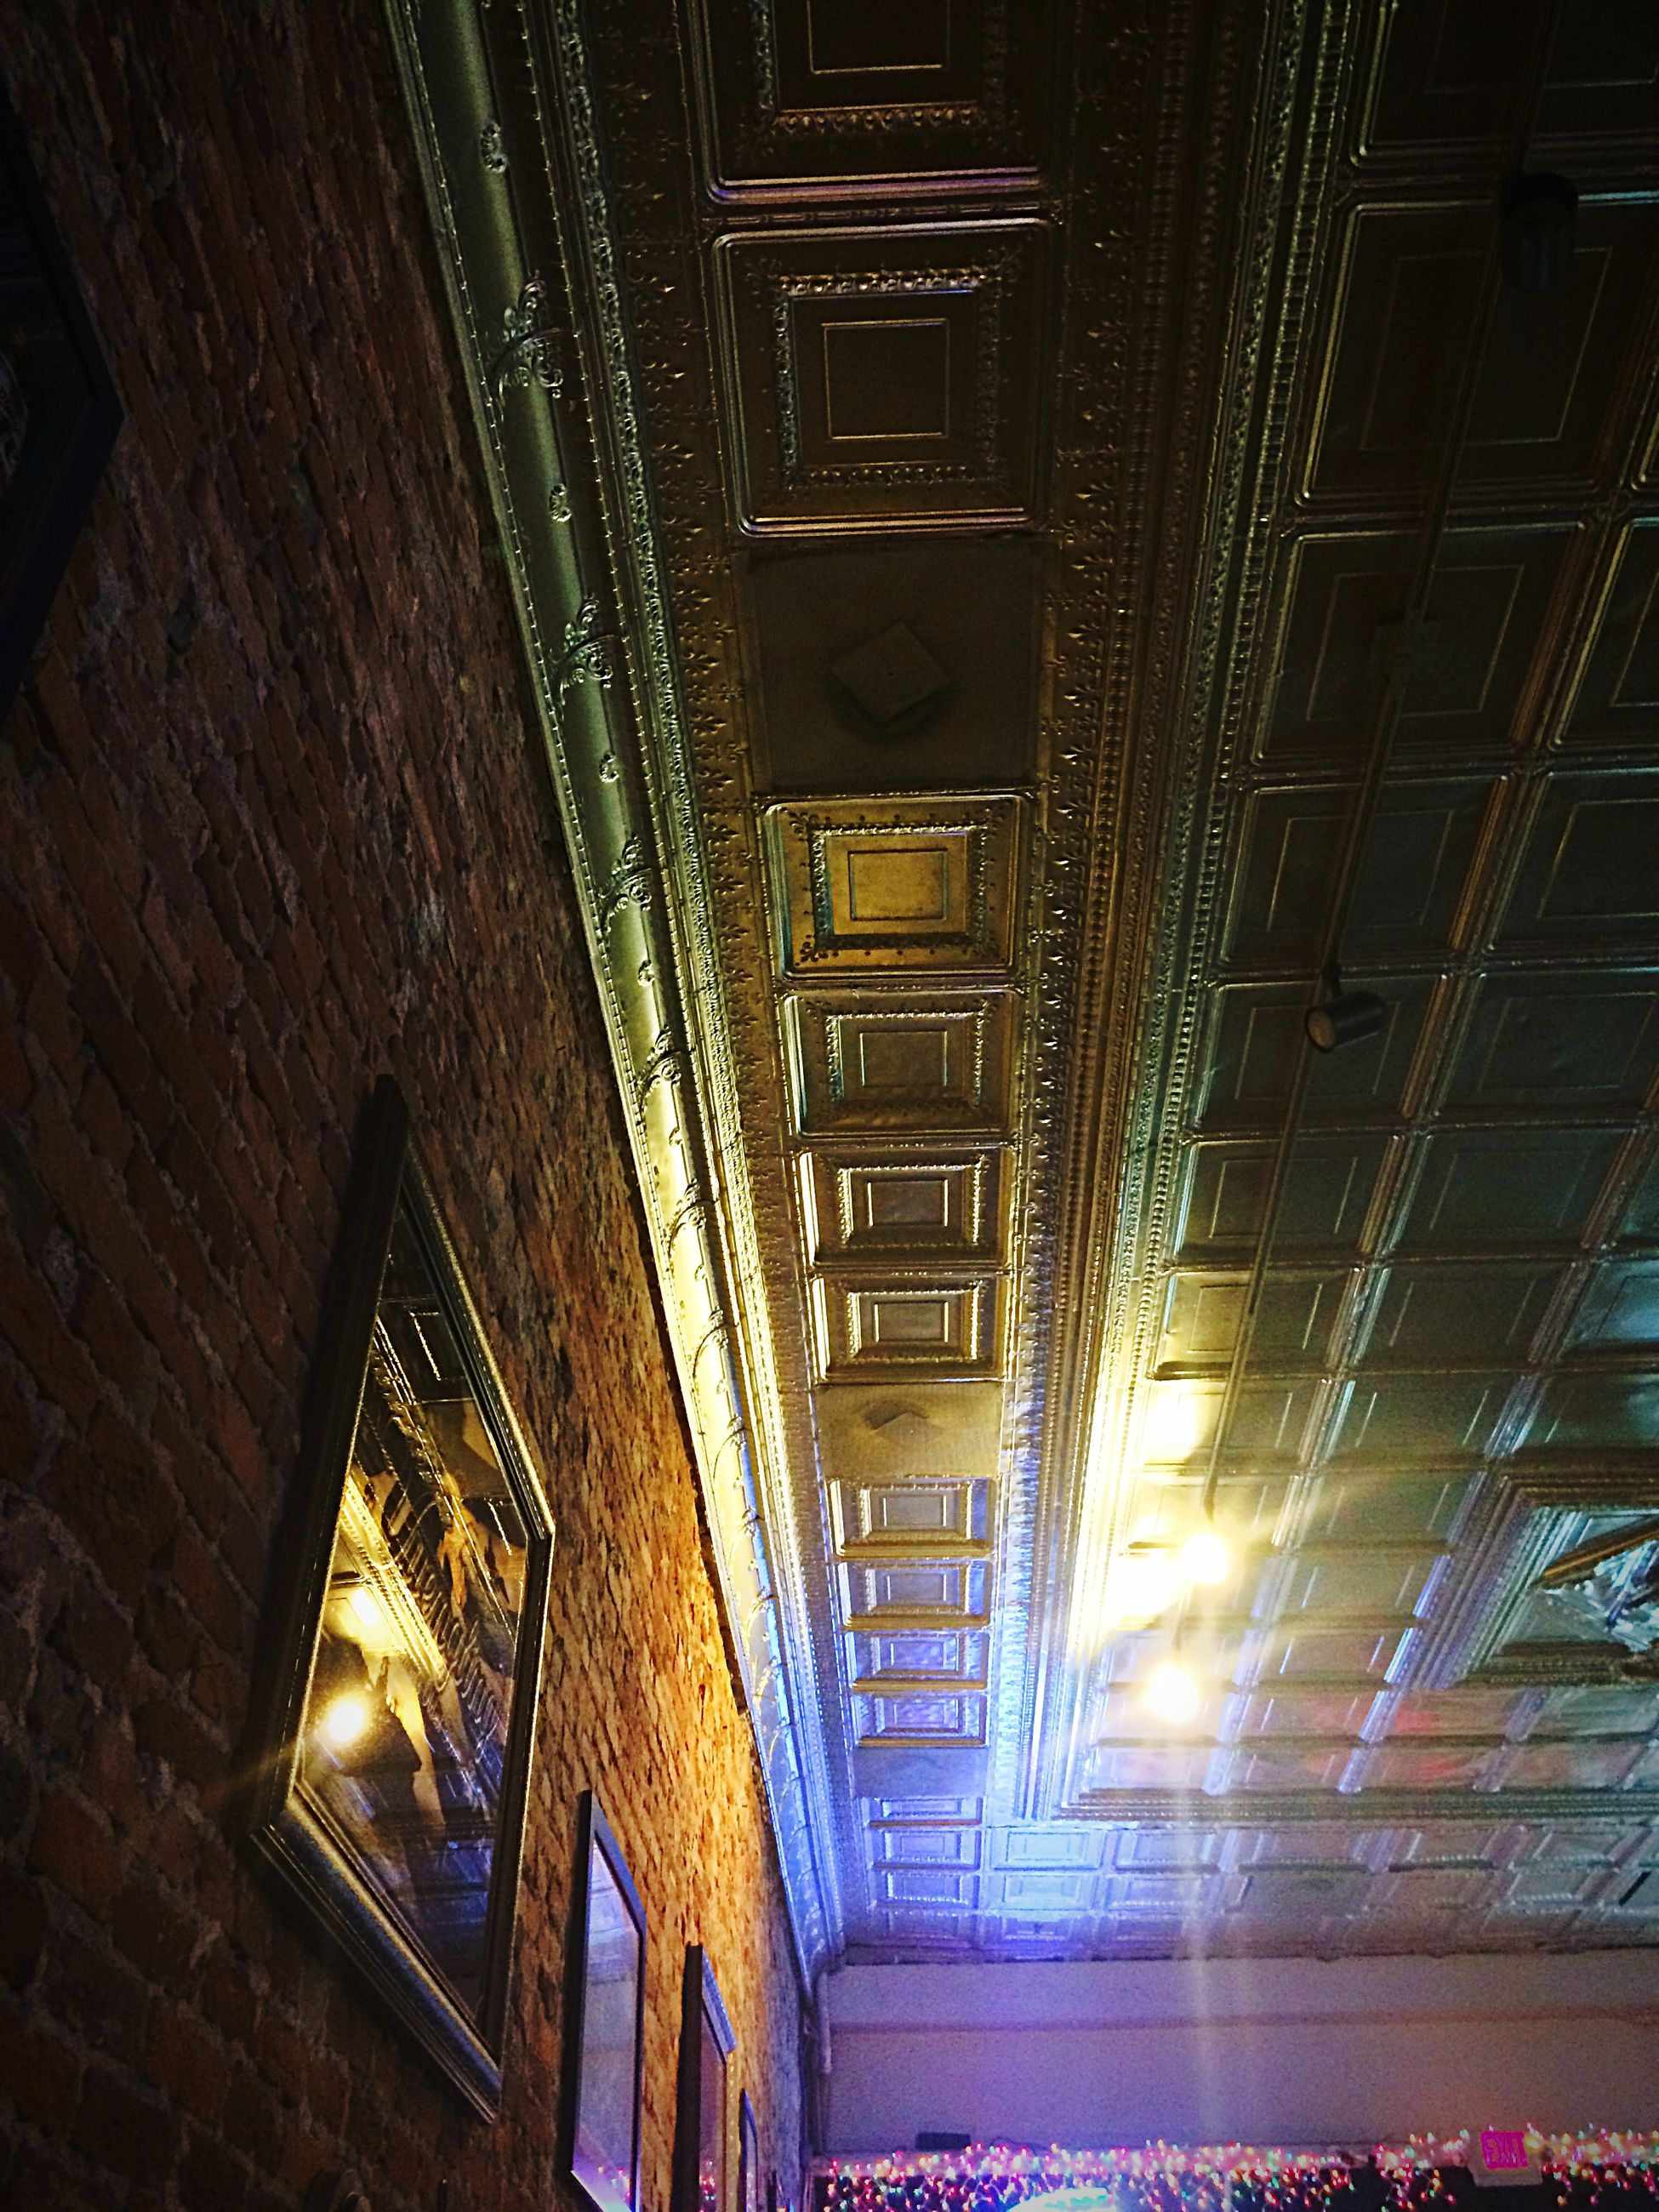 illuminated, built structure, architecture, night, lighting equipment, the way forward, indoors, steps and staircases, railing, diminishing perspective, steps, ceiling, light - natural phenomenon, vanishing point, high angle view, building exterior, staircase, no people, transportation, railroad track